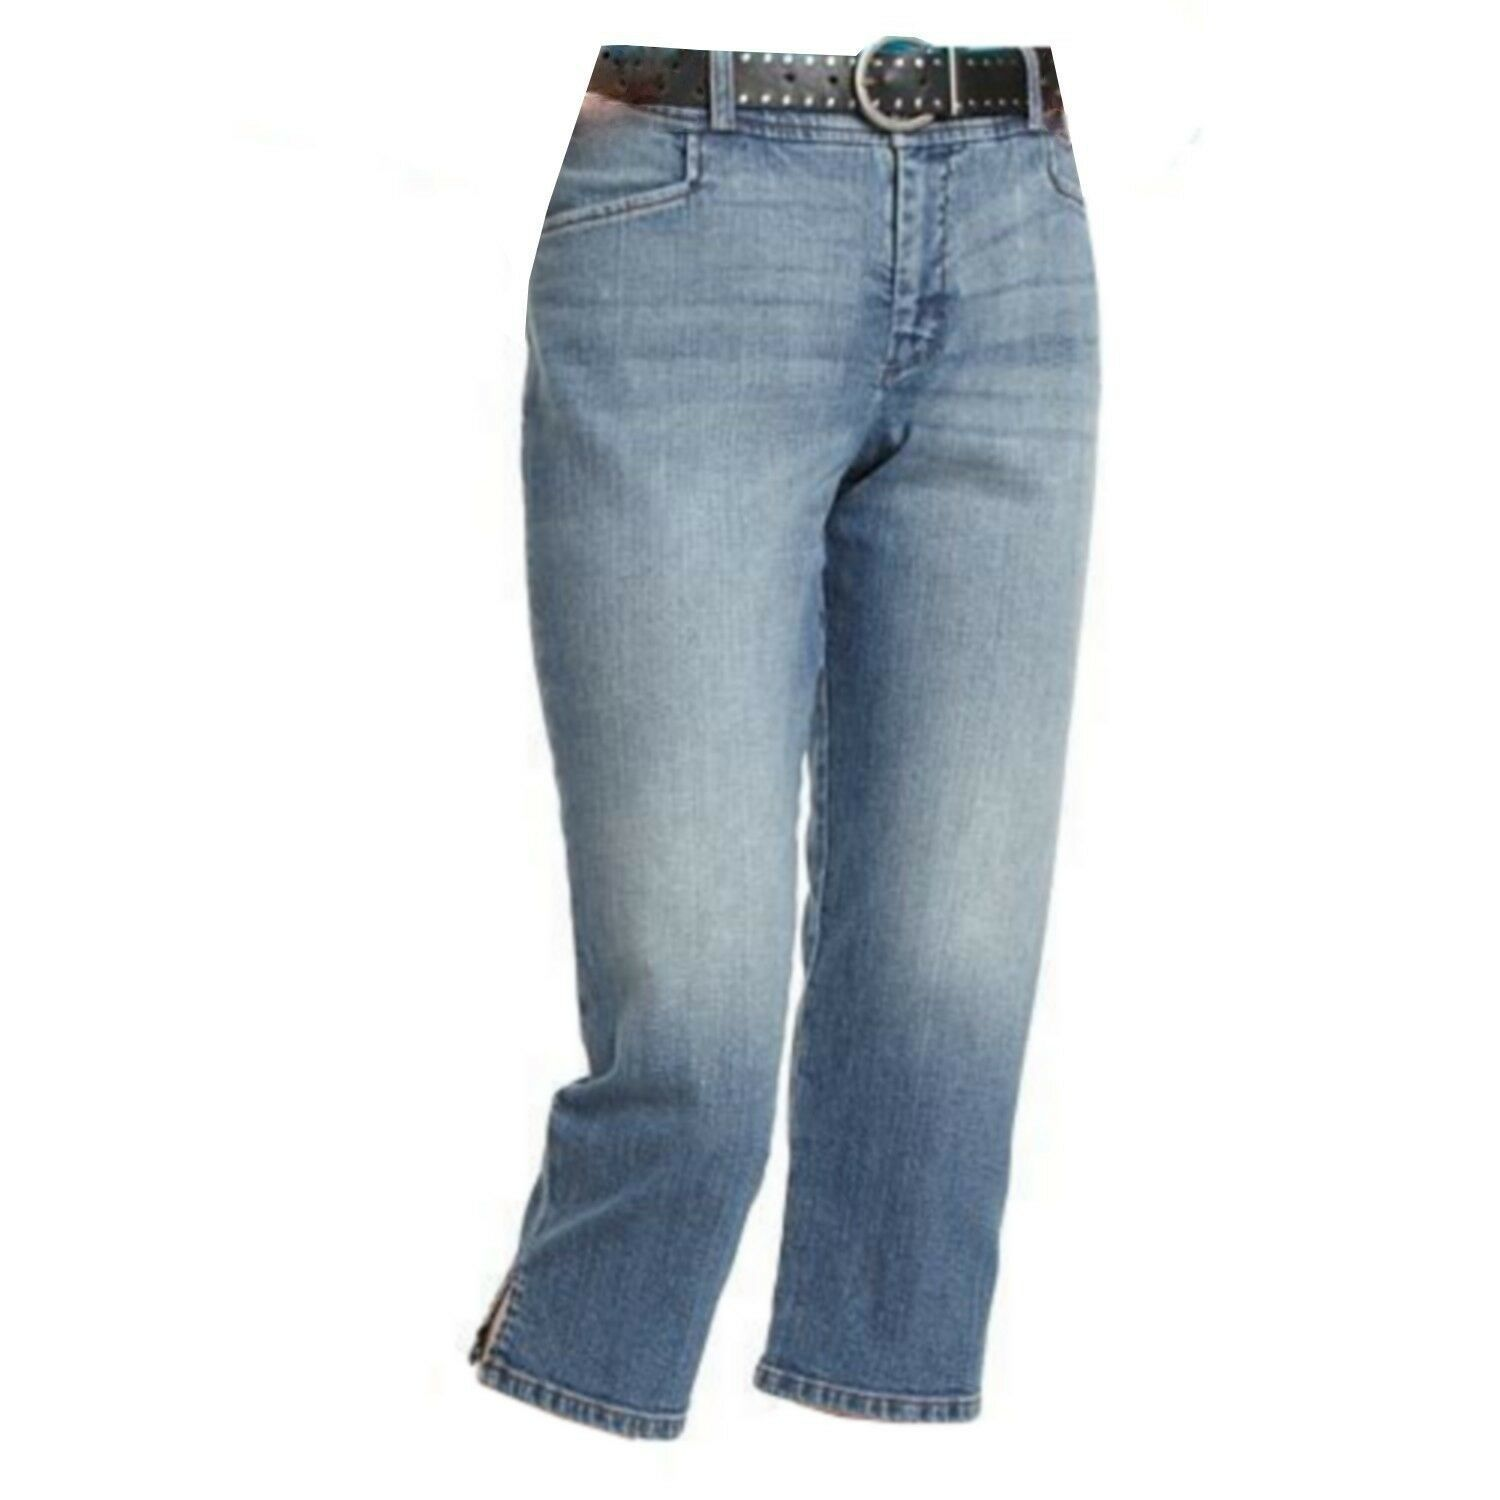 Primary image for Chaps by Ralph Lauren Petite 12 12P Slimming Fit South Beach Denim Jean Capris